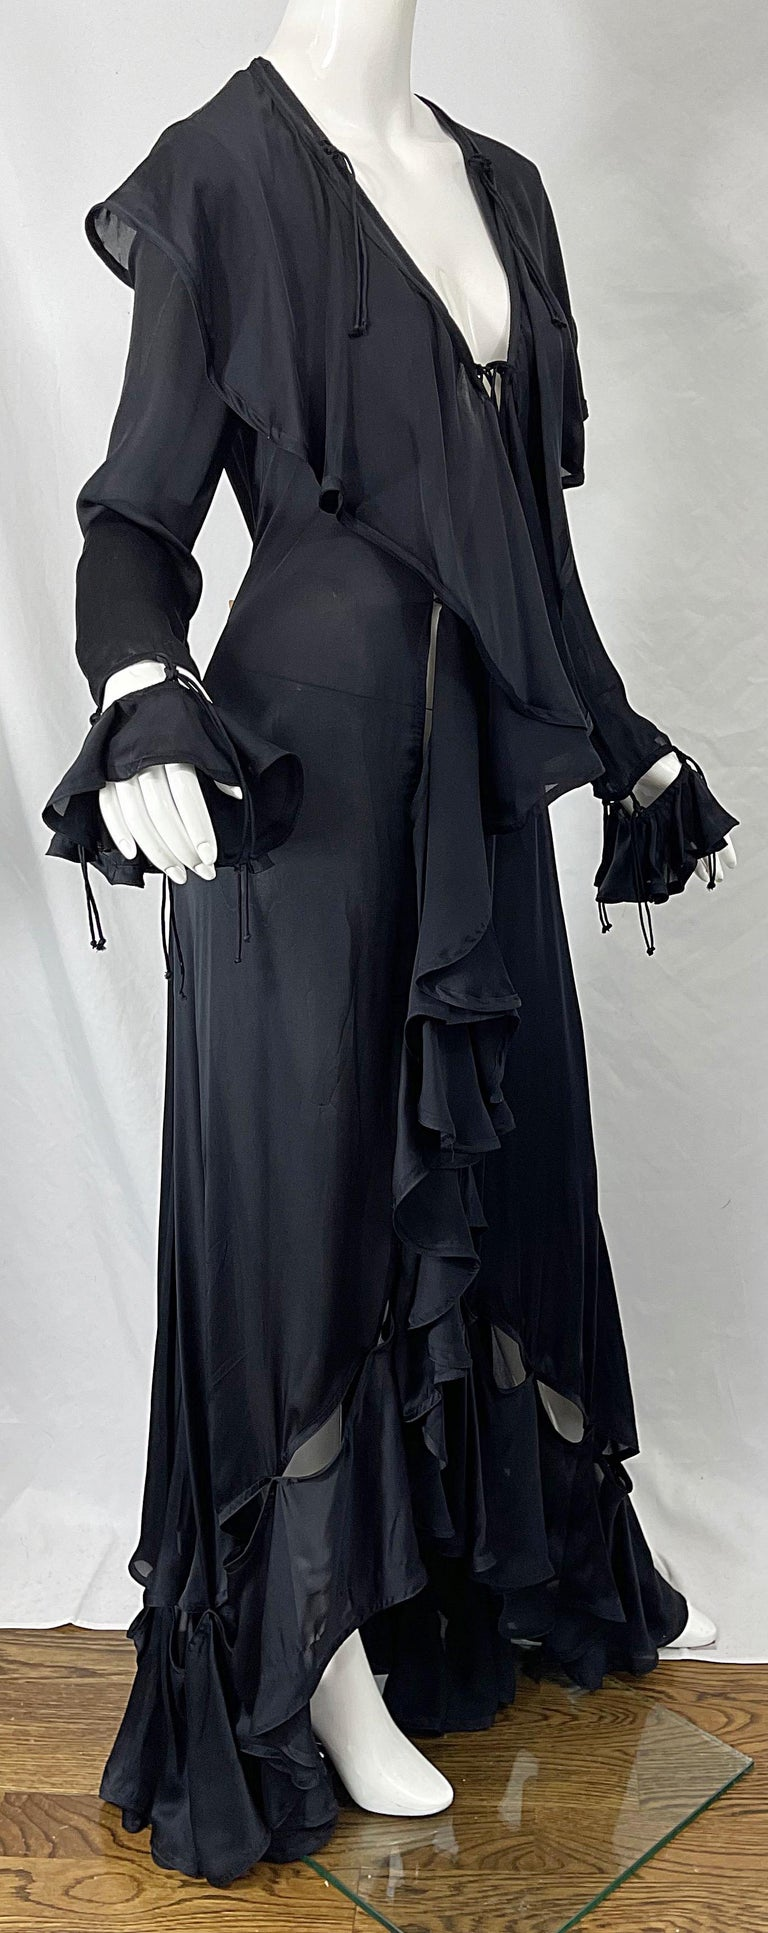 Yves Saint Laurent by Tom Ford Fall 2003 Runway Black Silk Chiffon Gown Size 38 For Sale 8